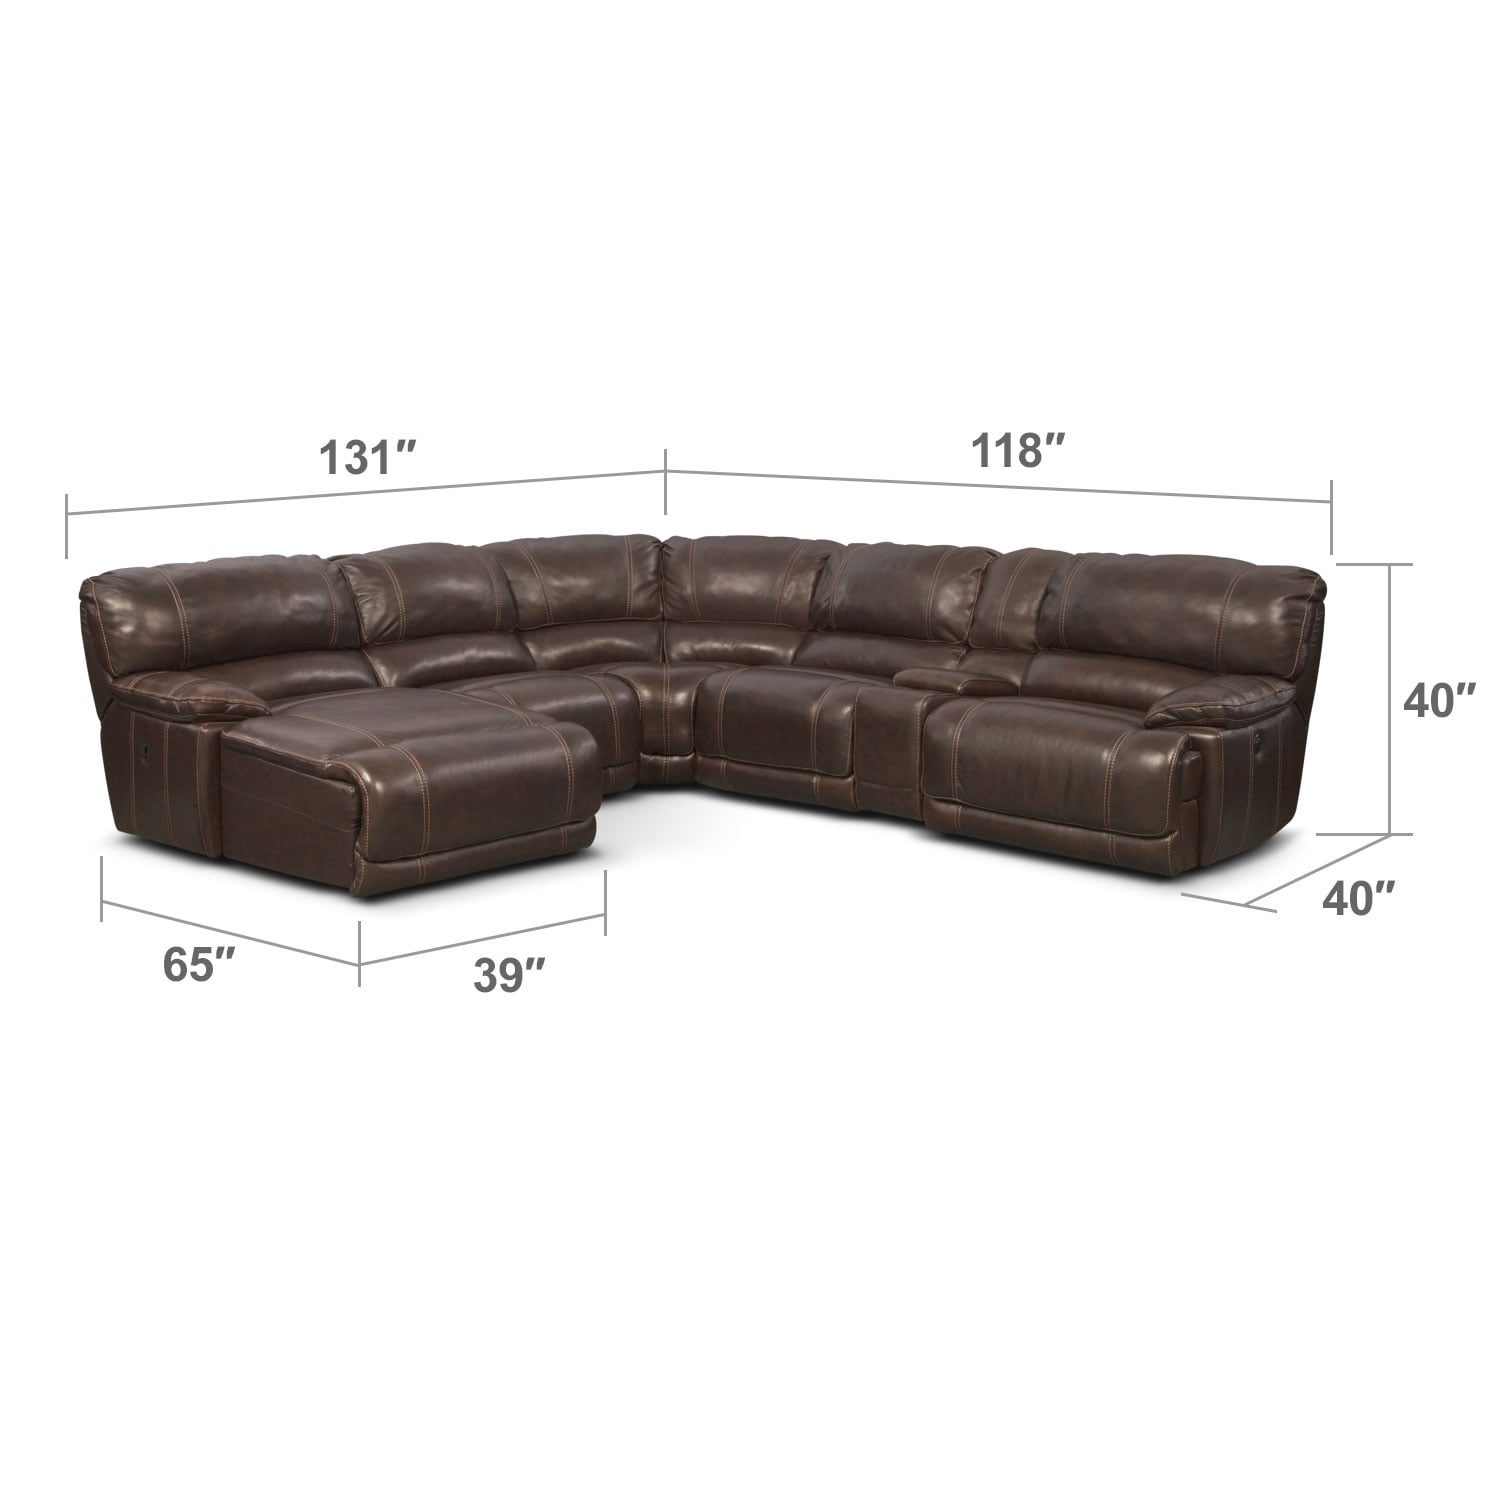 Marlo Furniture Living Room St Malo 6 Piece Power Reclining Sectional With Left Facing Chaise